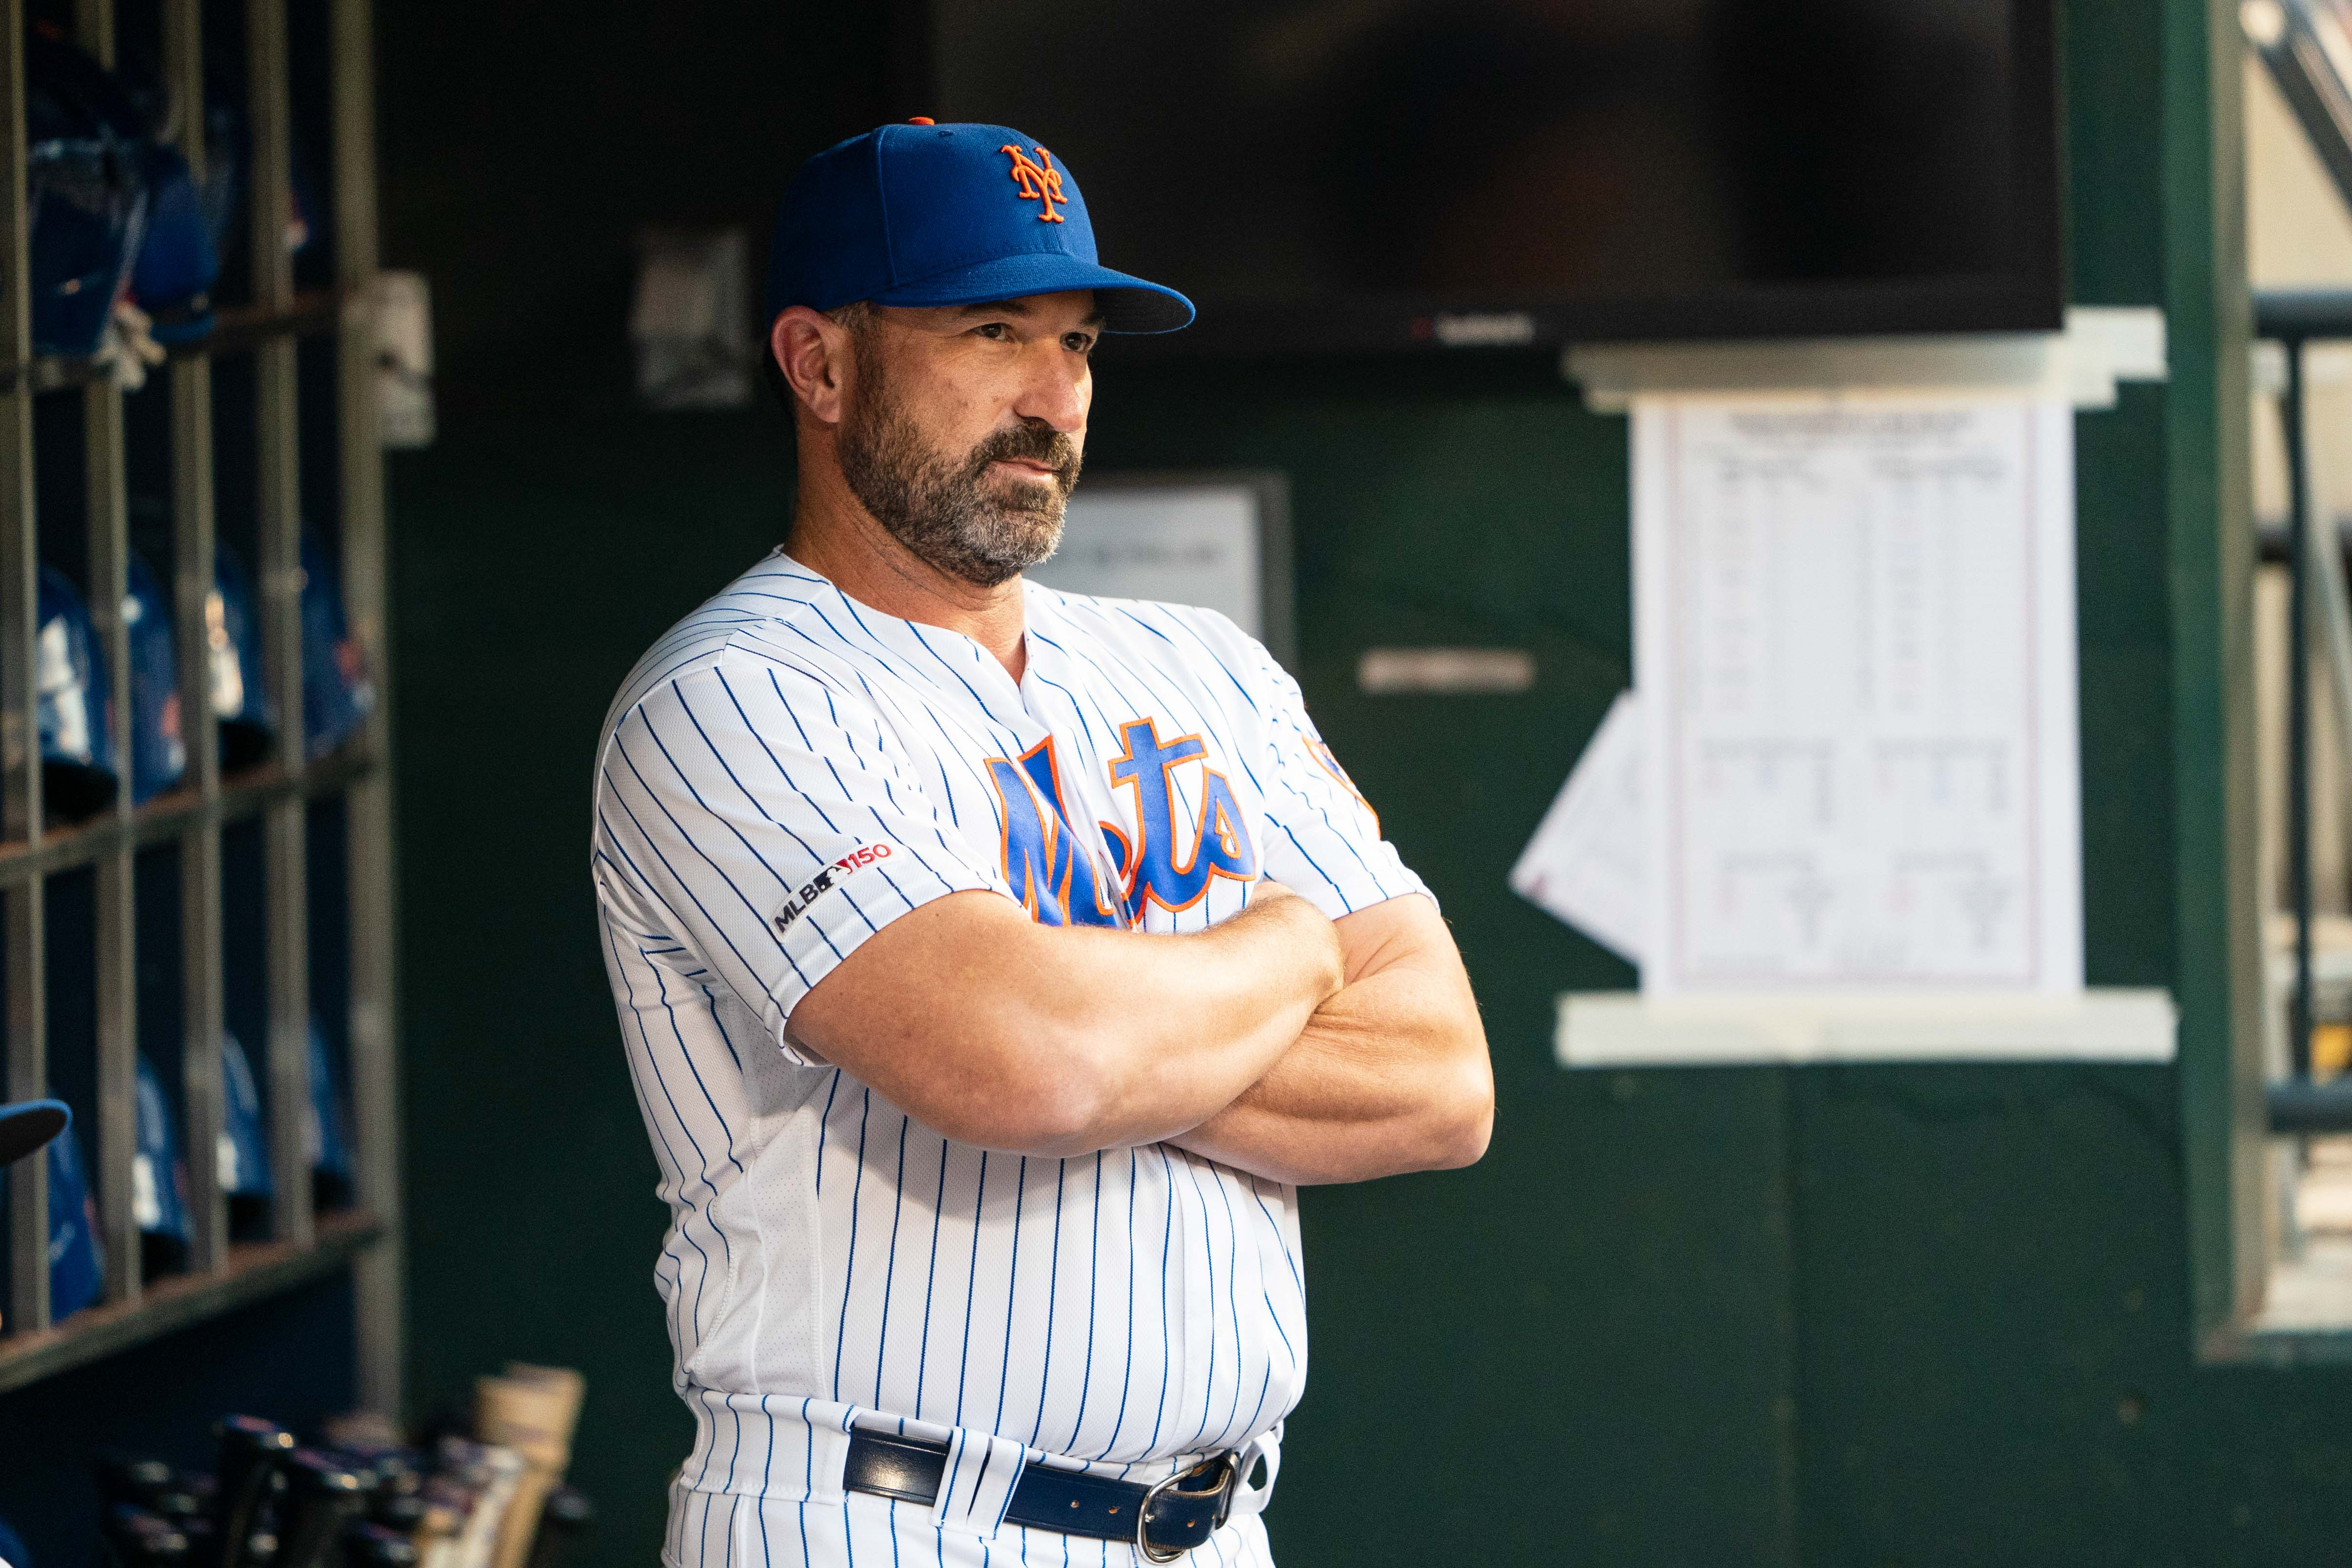 Angels fire coach Mickey Callaway after MLB's sexual harassment investigation: 'I take responsibility for the consequences'